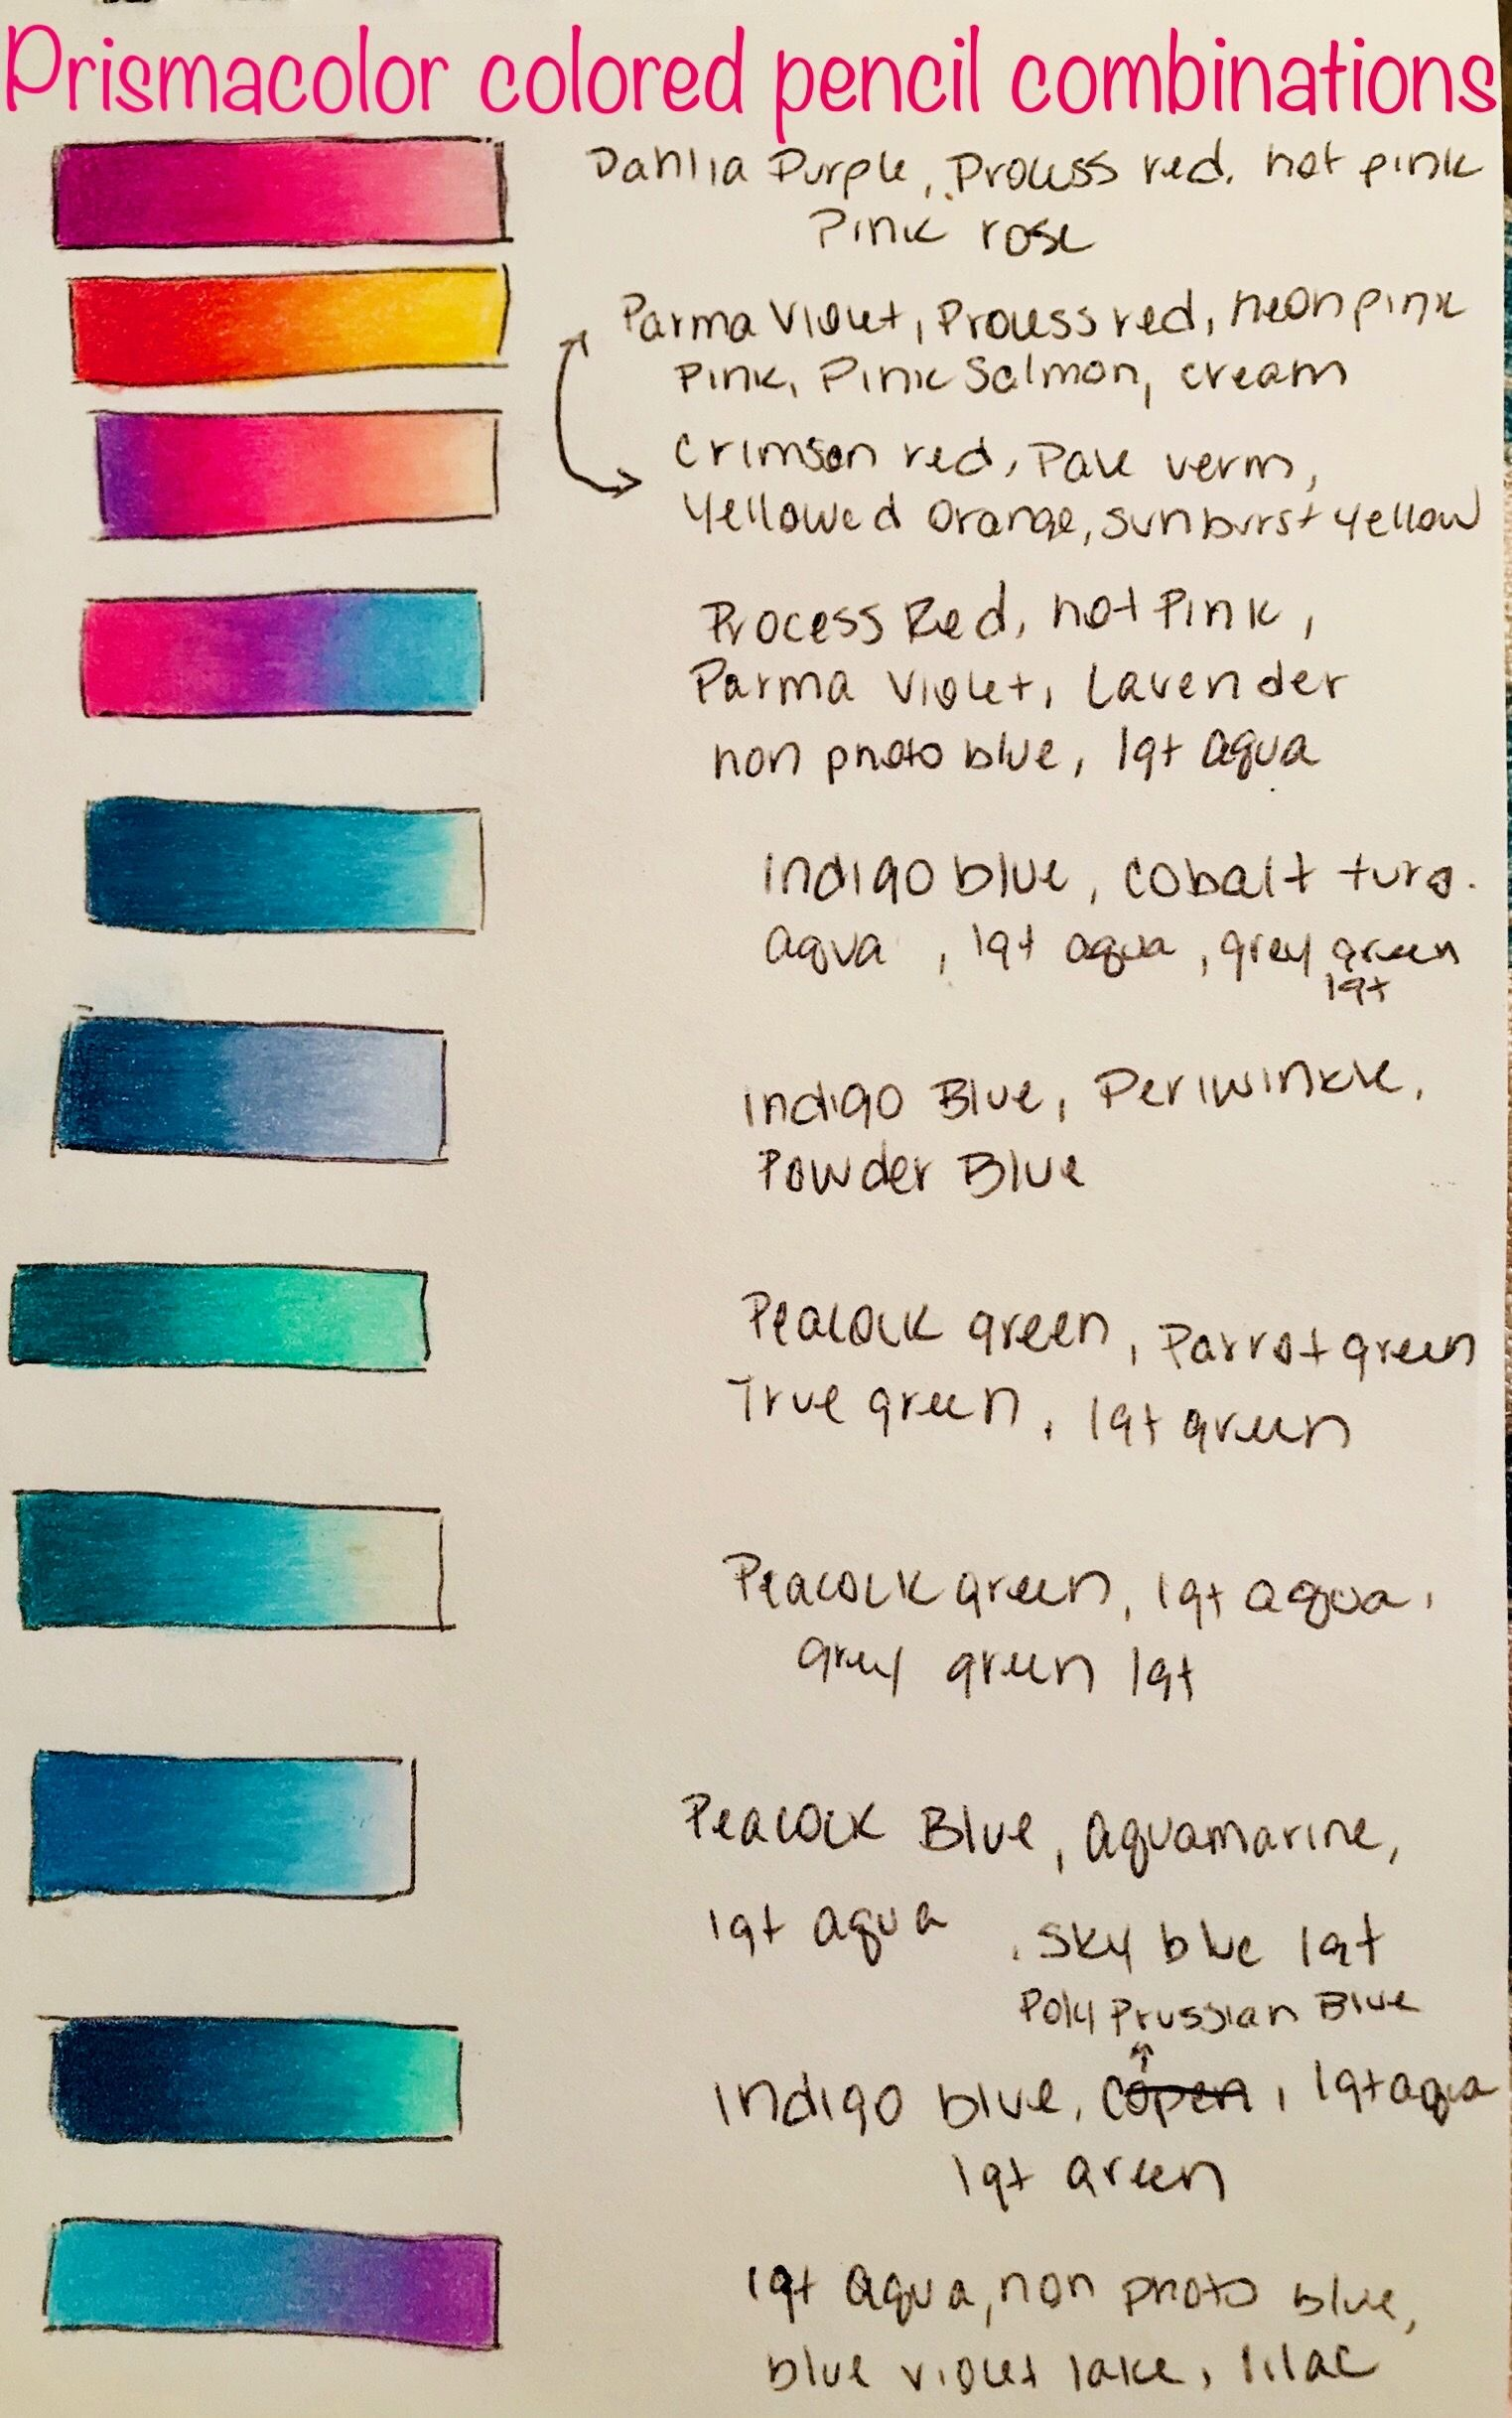 Prismacolor Pencil Color Combinations With Images Prismacolor